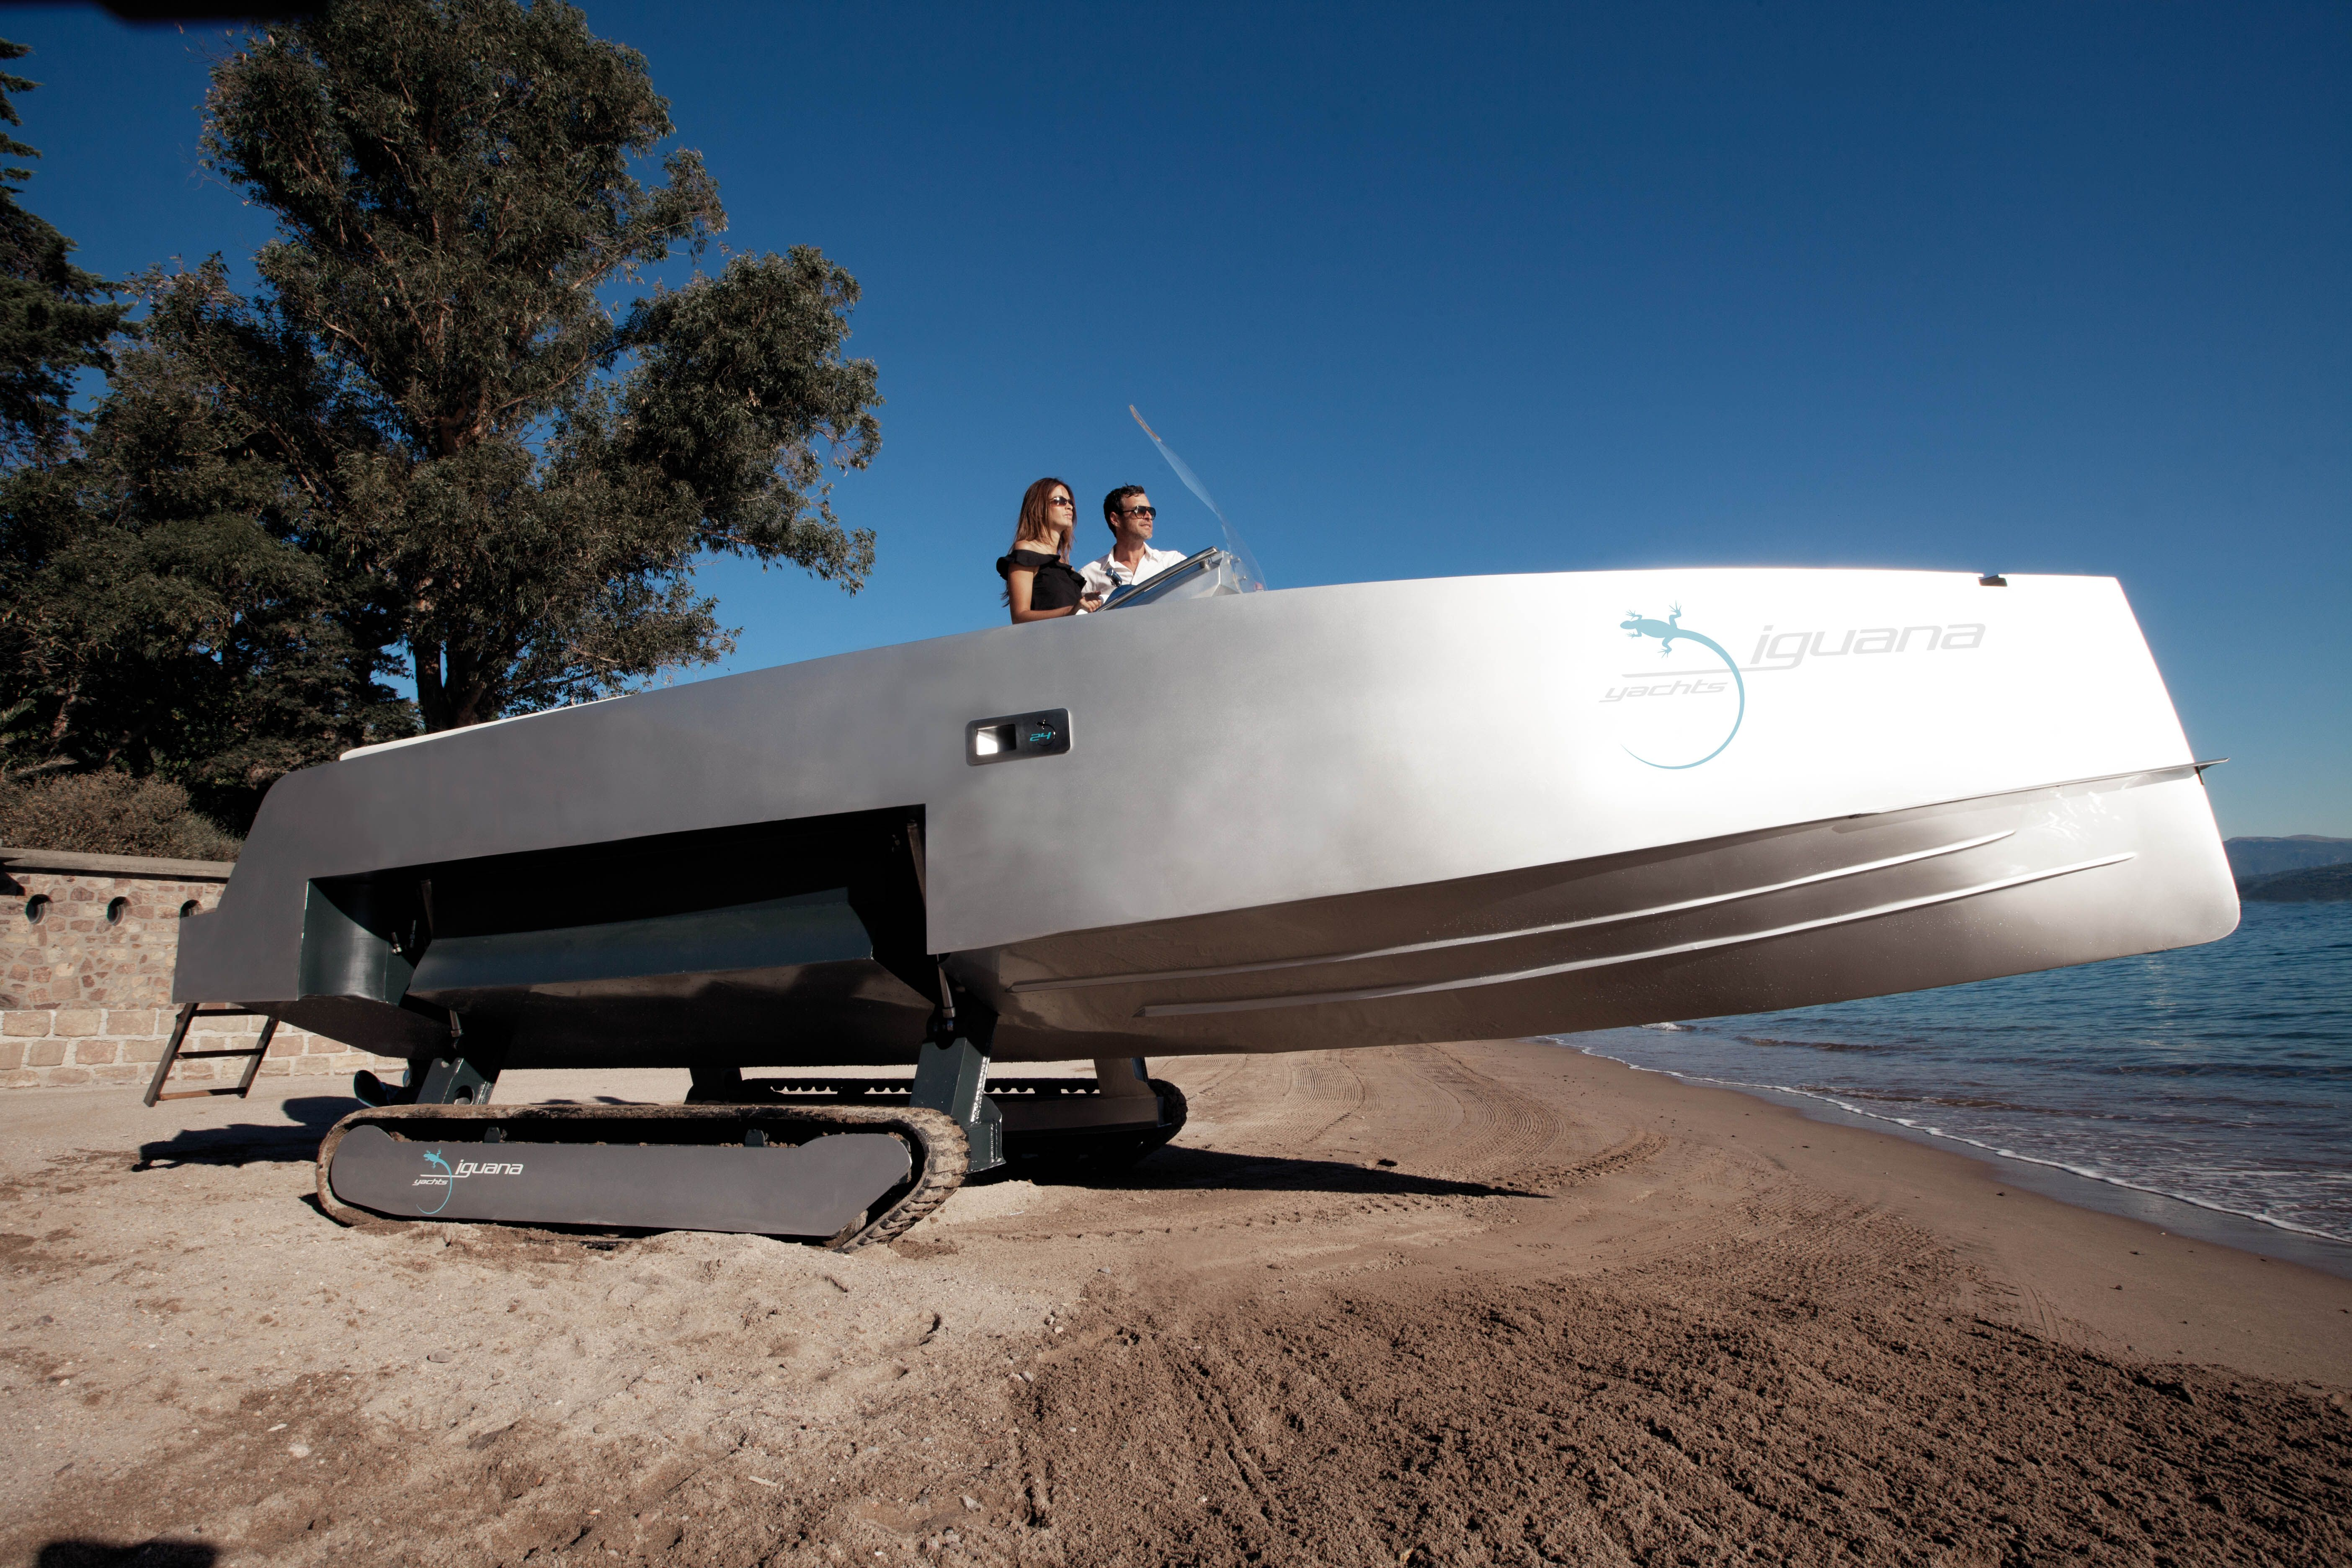 IIguana Yachts are equipping high performance boats with